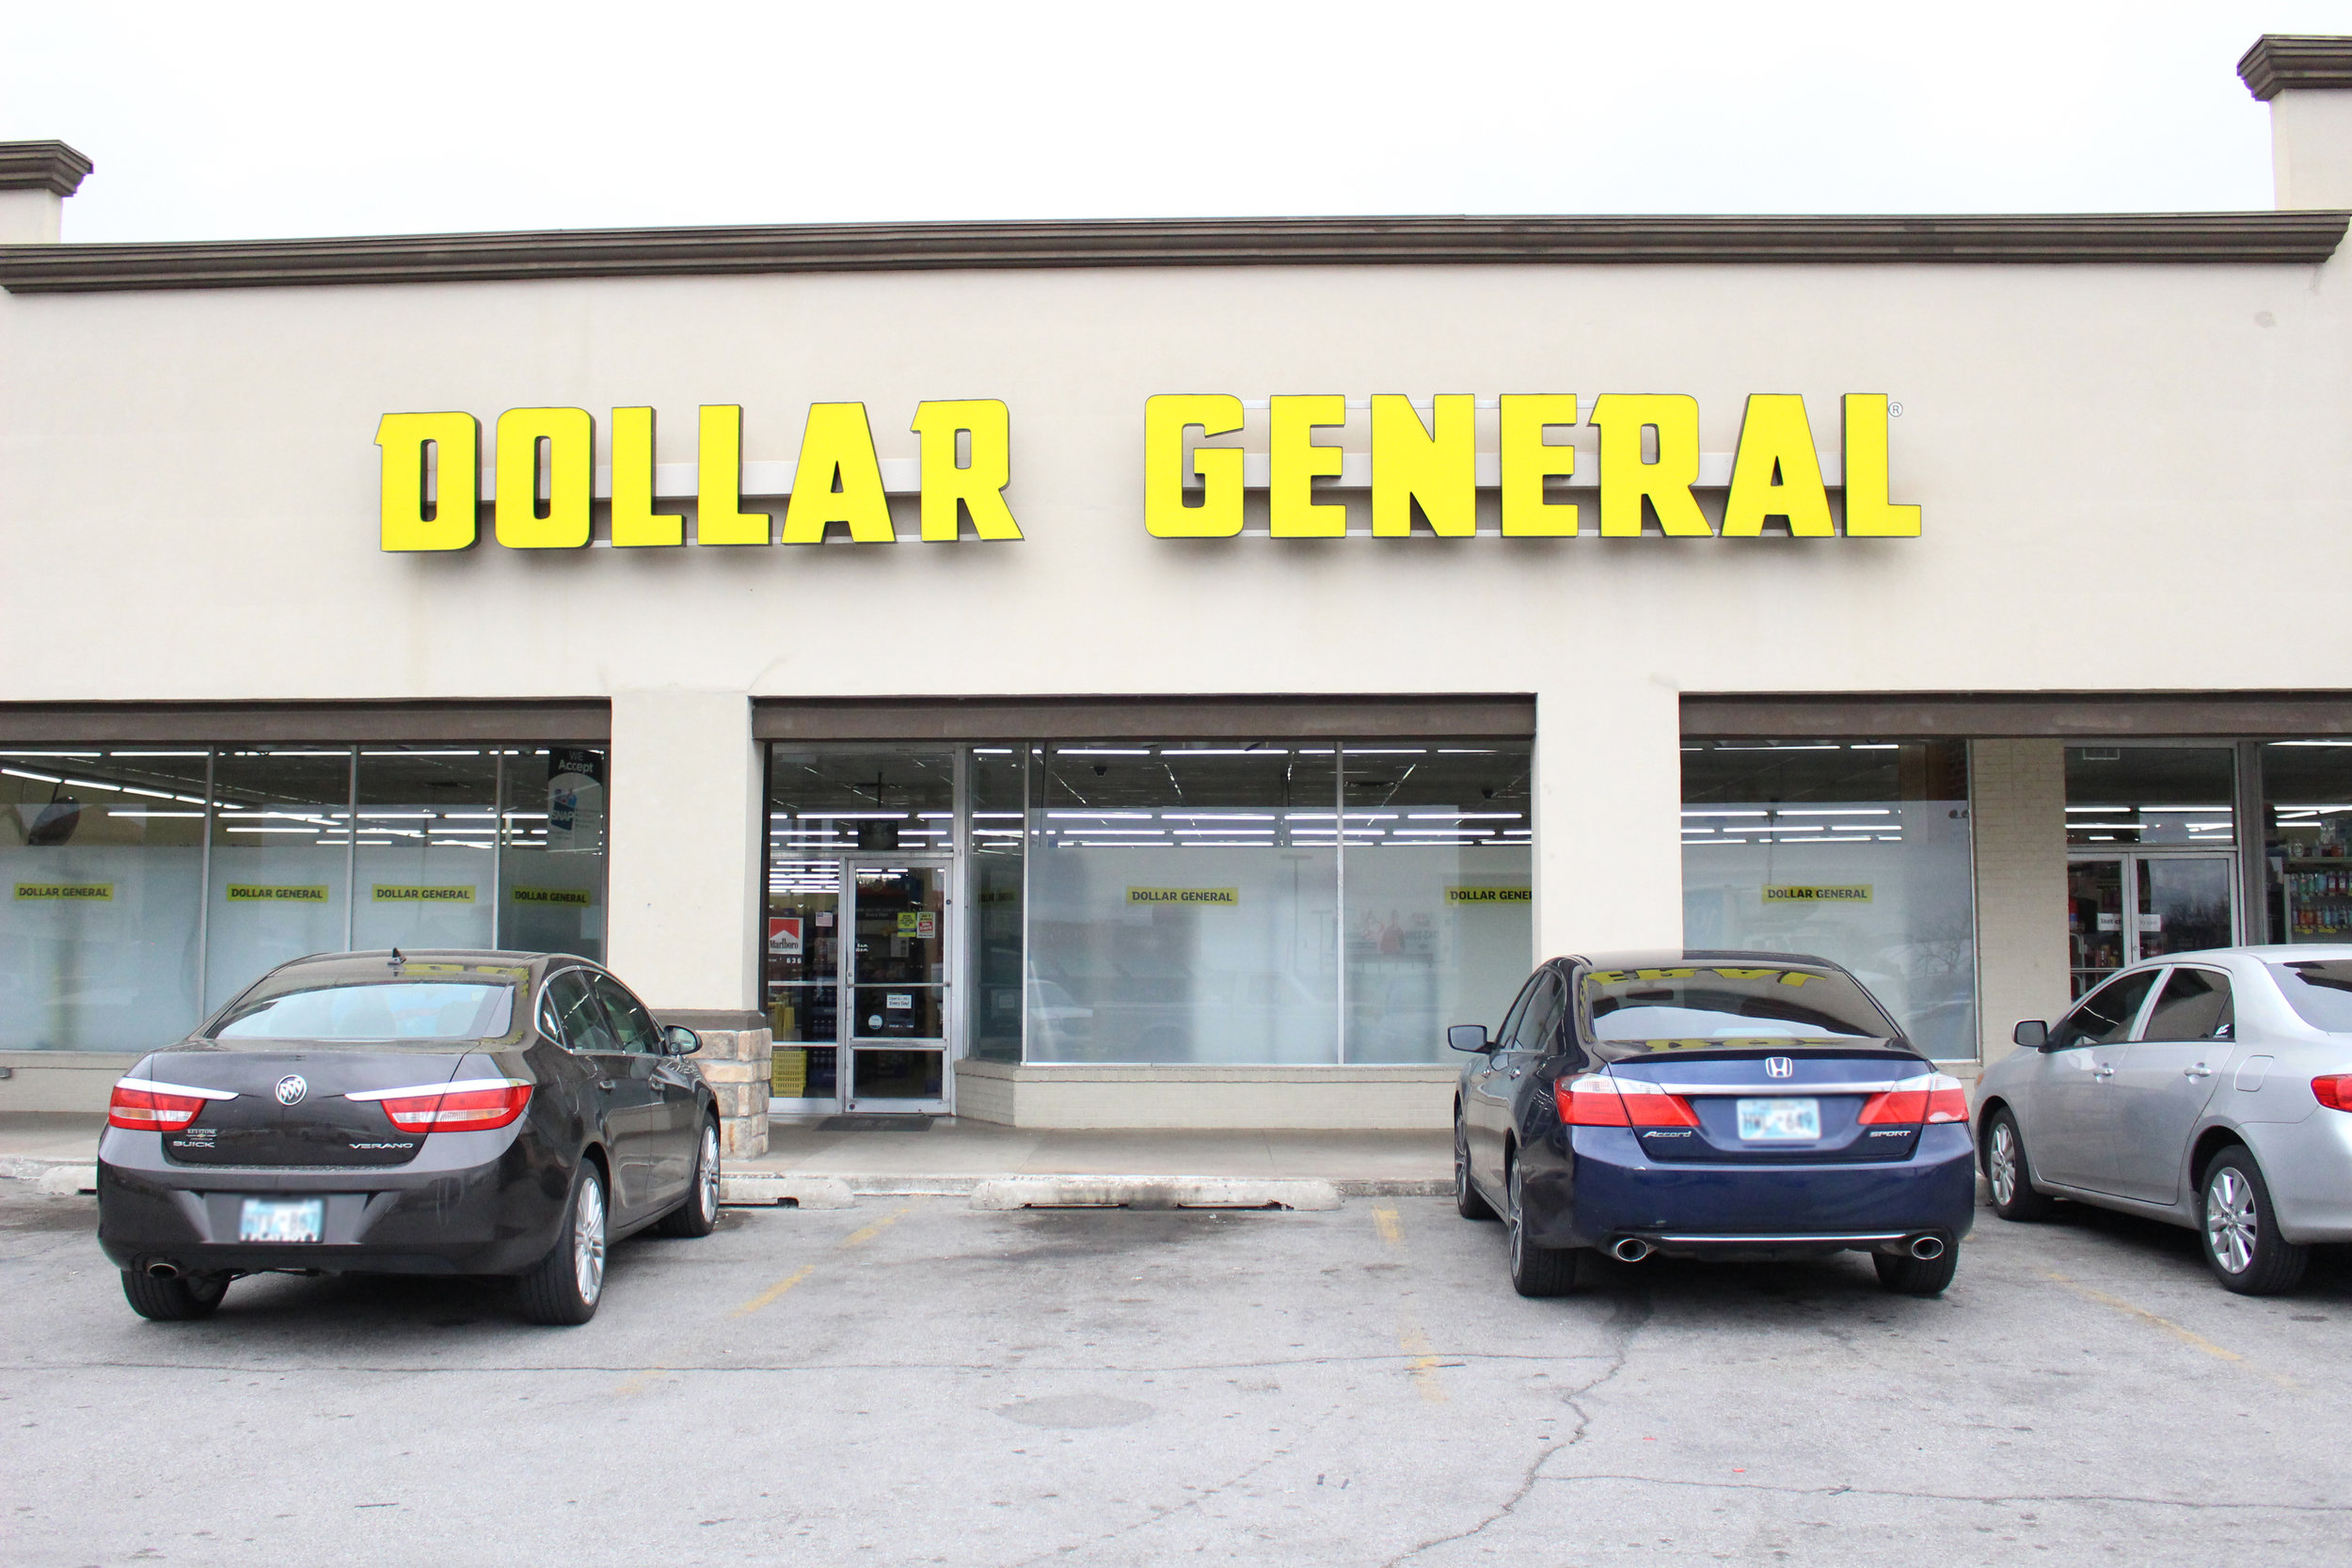 dollar general - the shops at adams road 520 plaza court